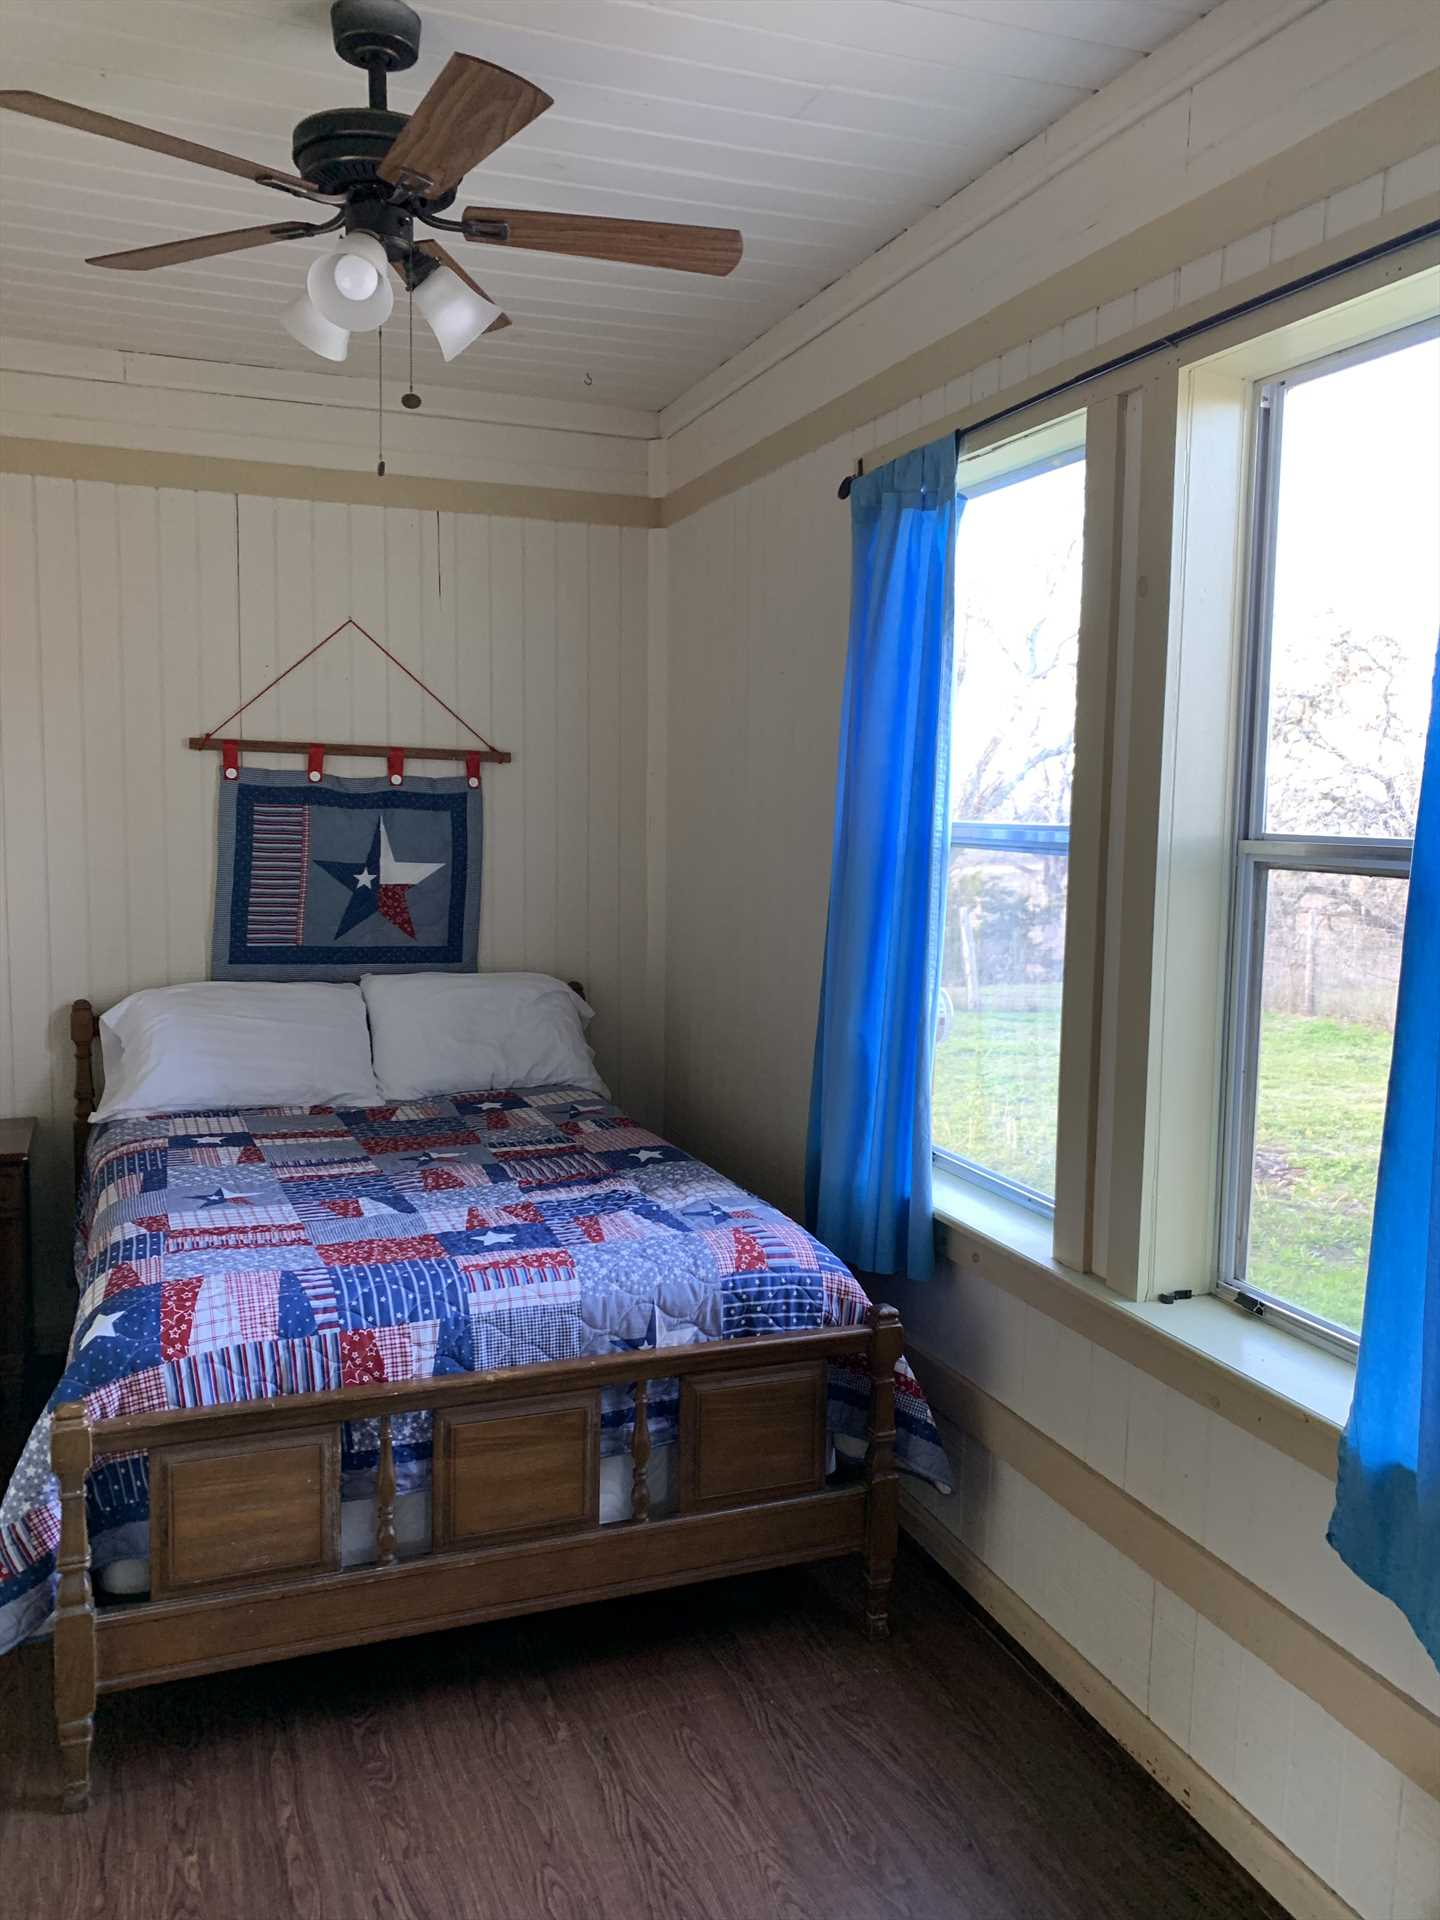 Plenty of natural lighting and an authentic Lone Star theme add to the cabin's charm!